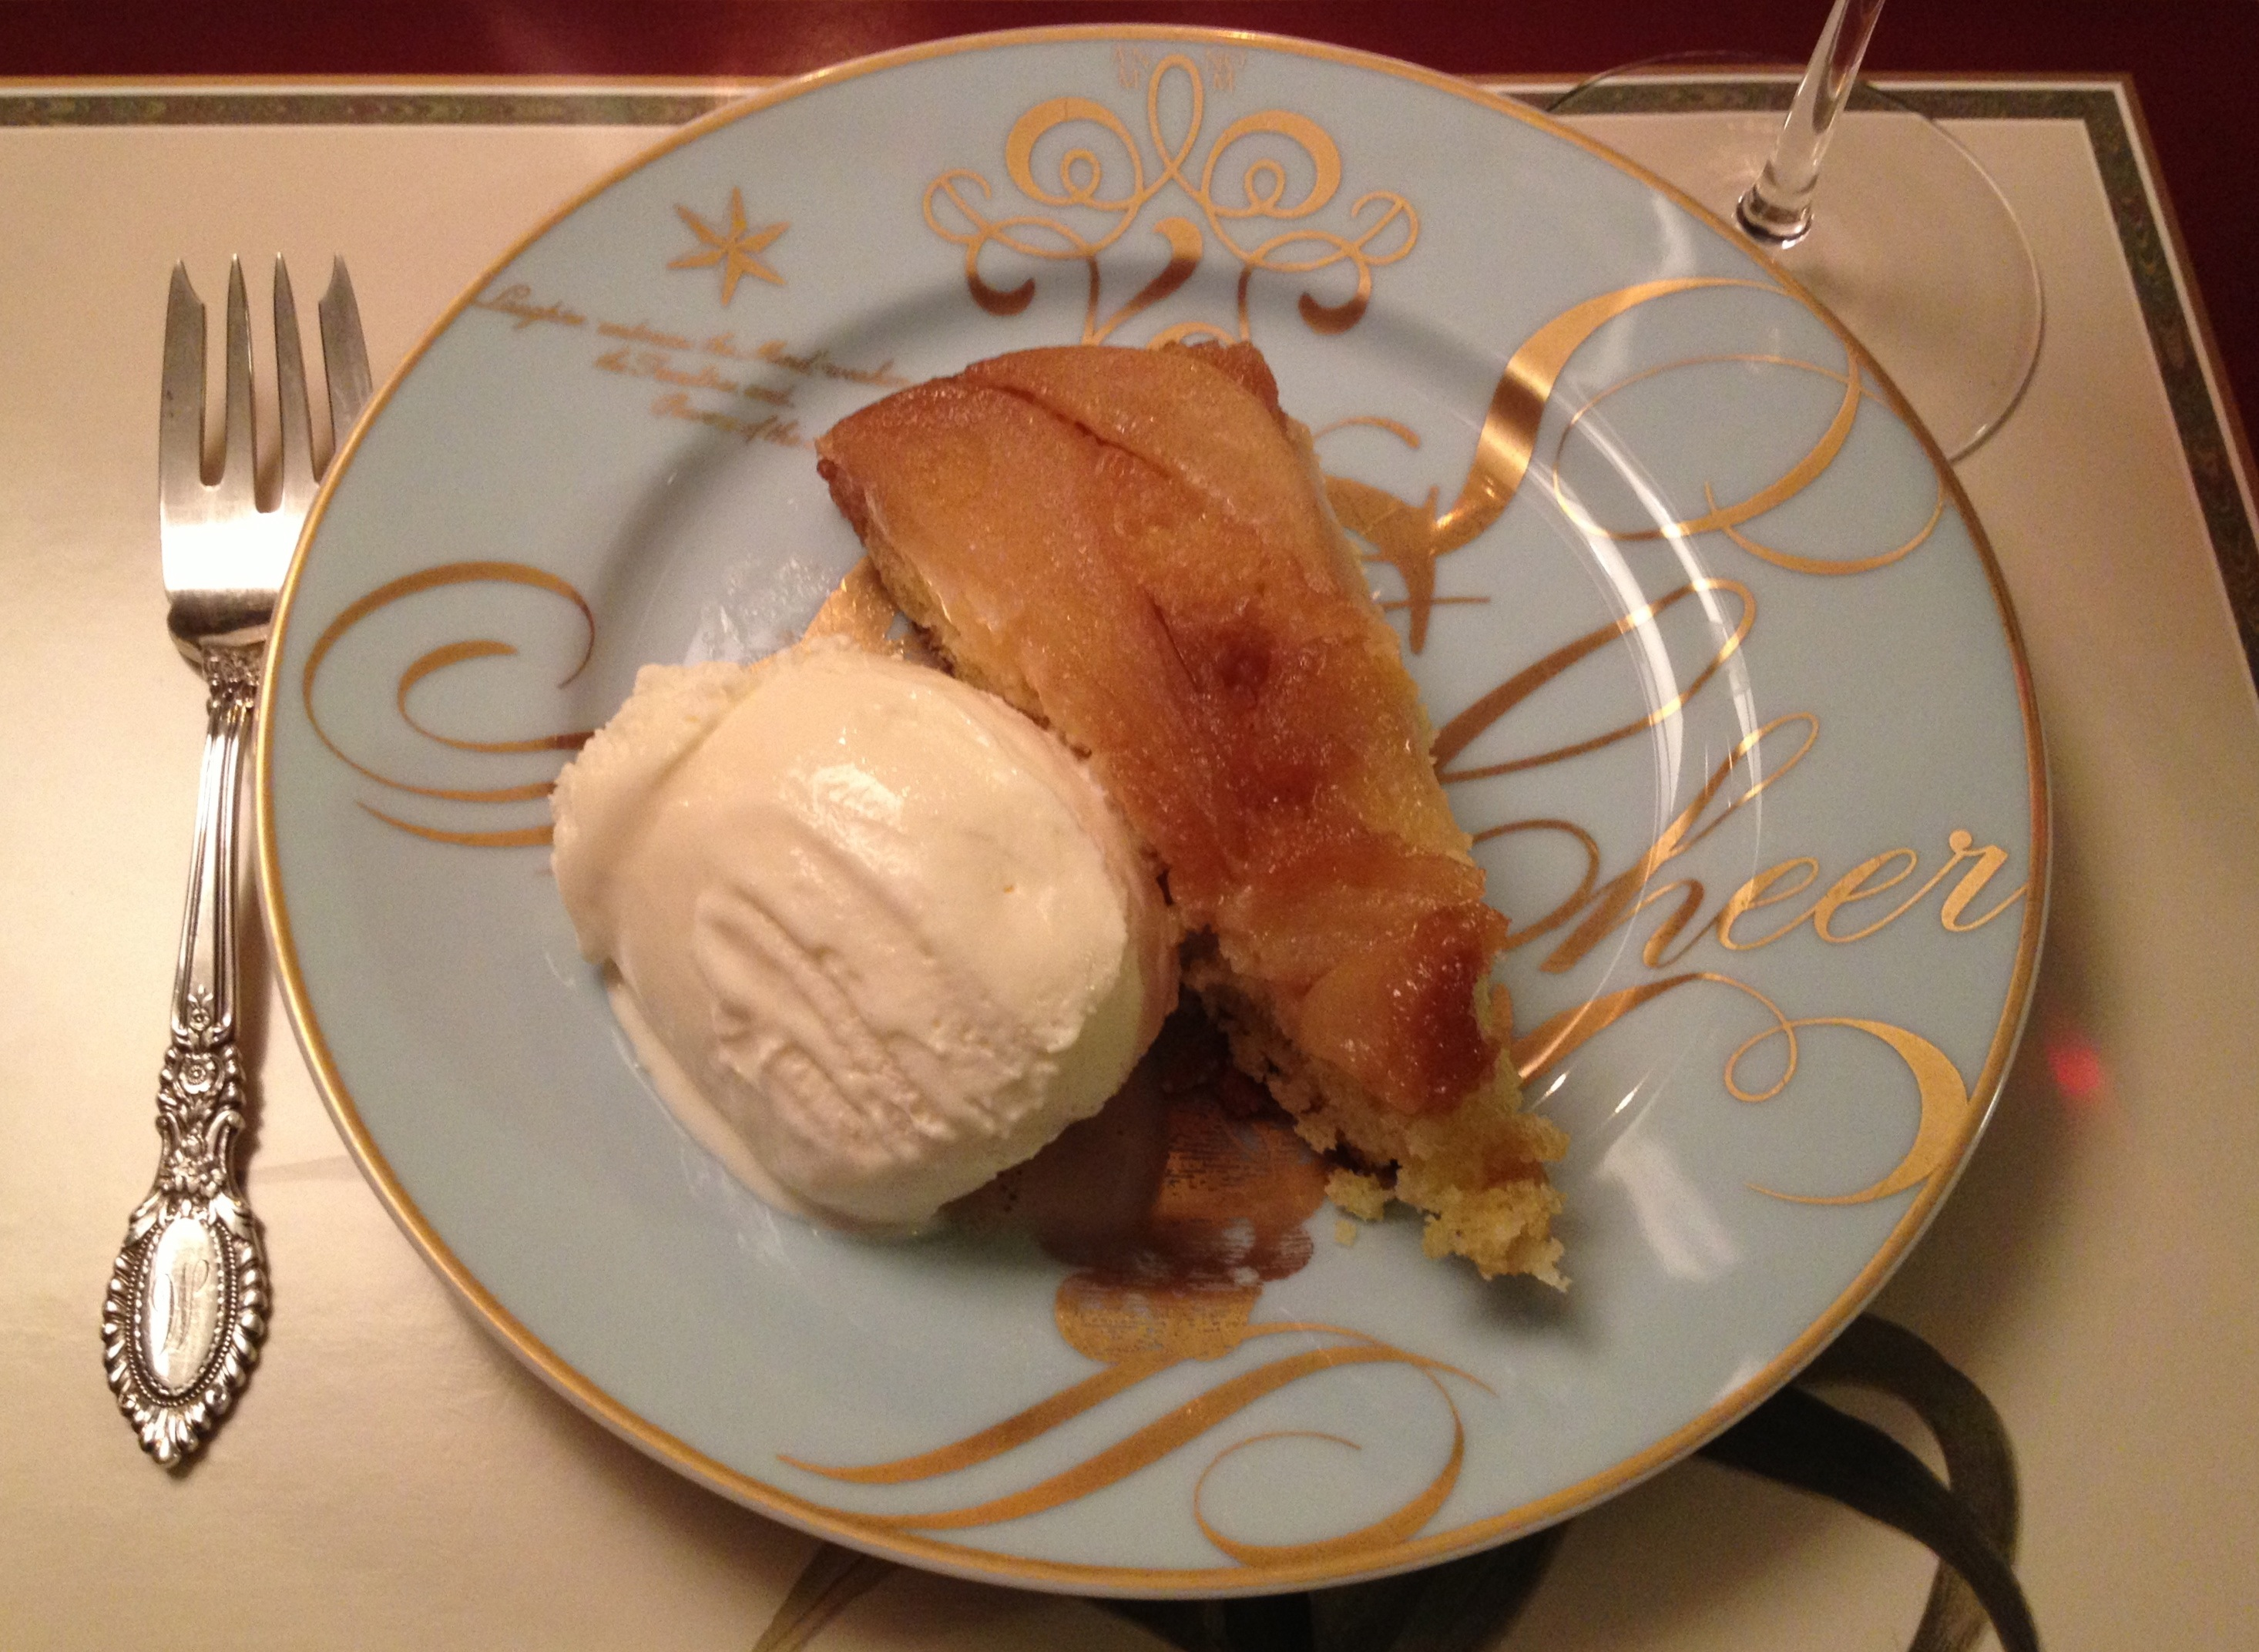 Slice of pear upside down cake with a small scoop of ice cream on a light blue plate from Williams Sonoma.